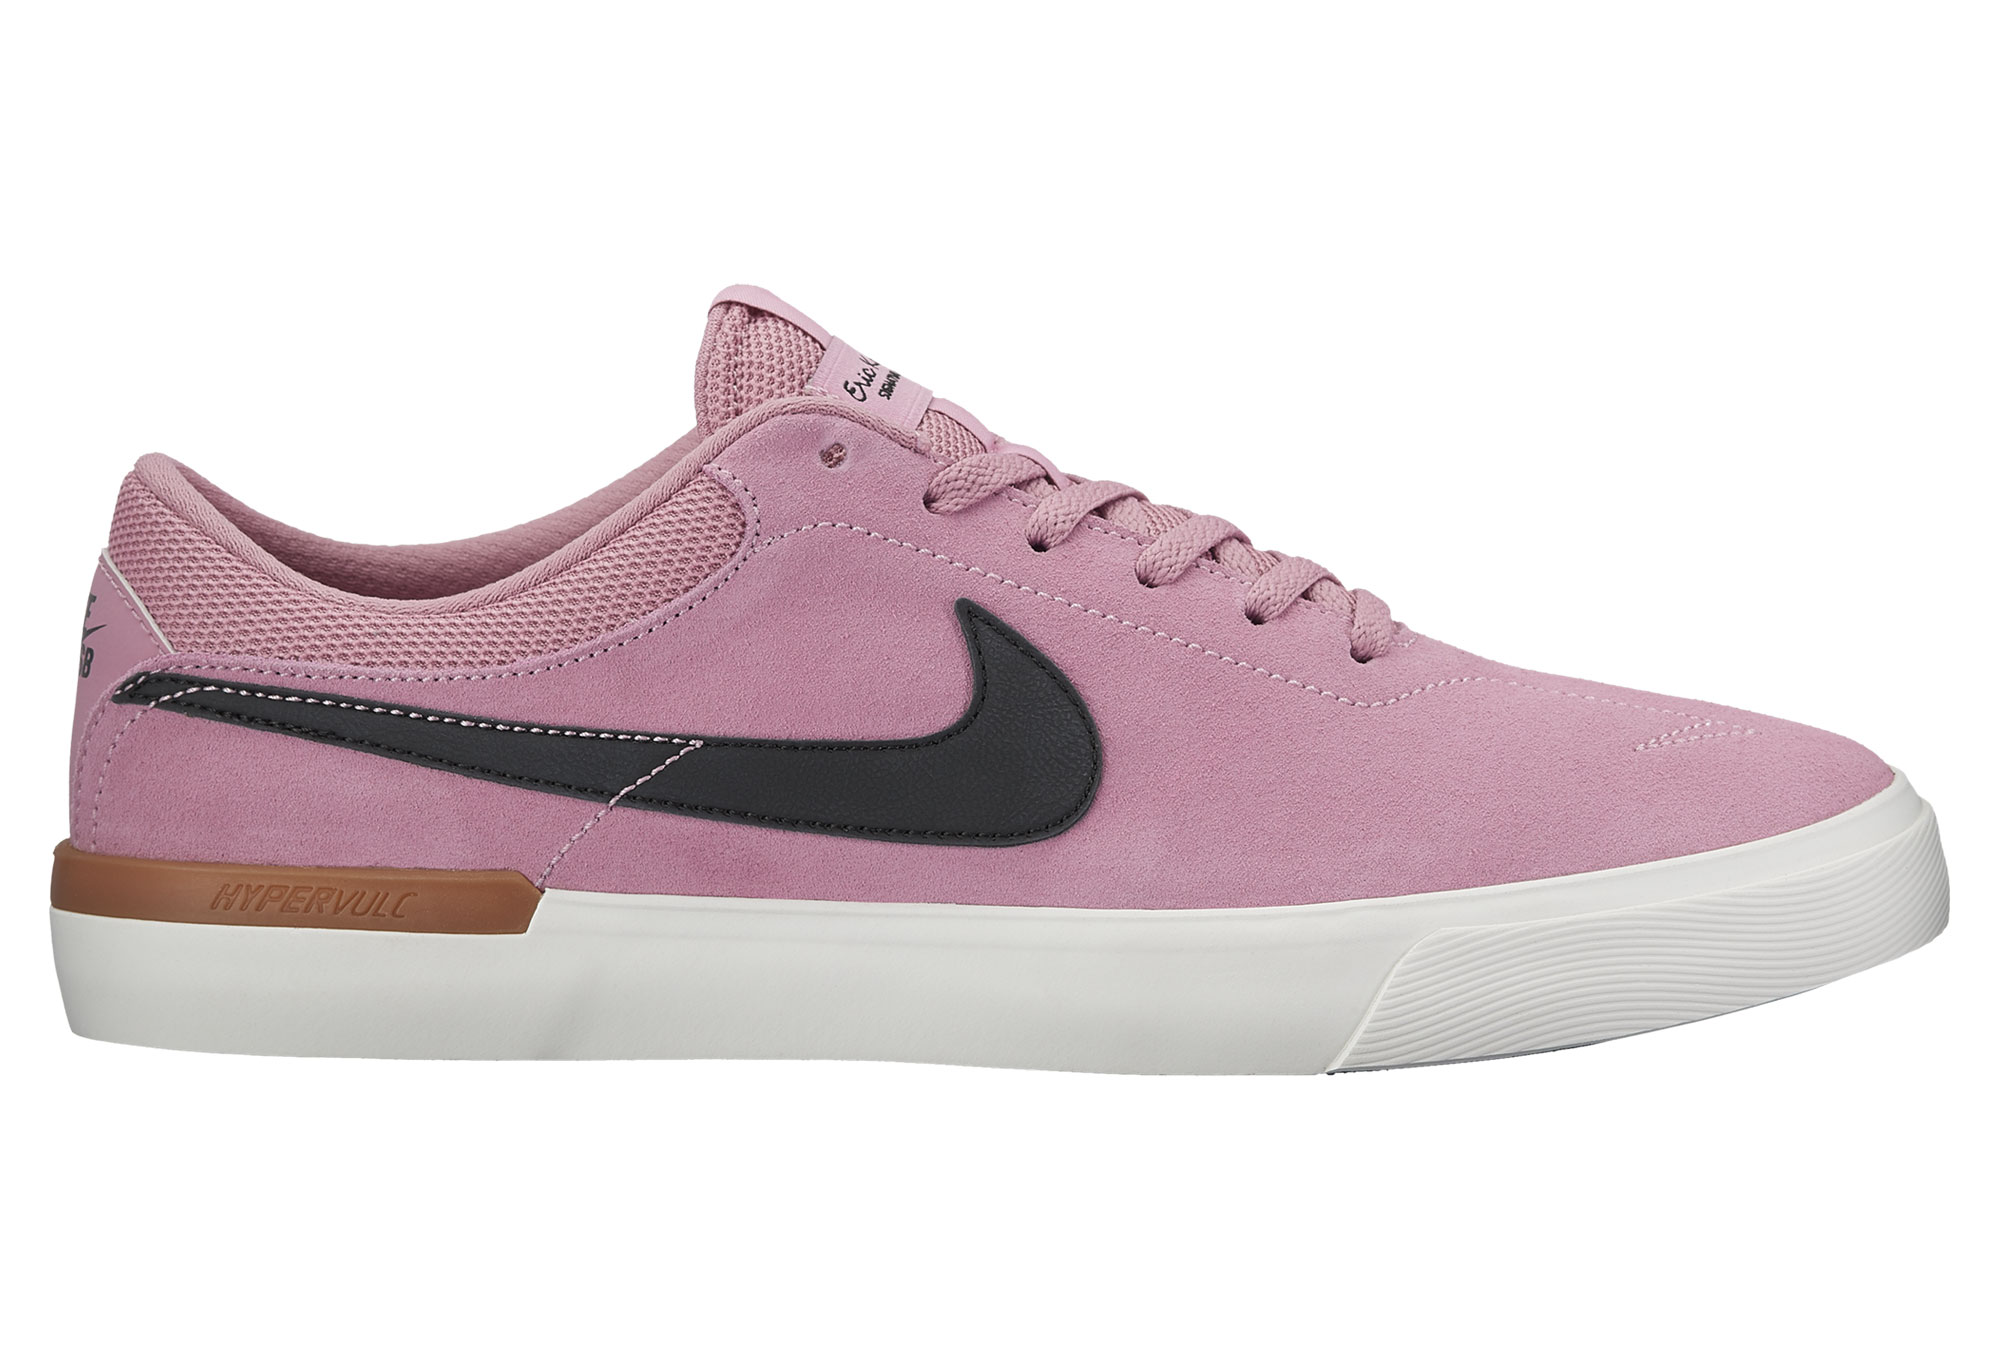 Nike SB Hypervulc Eric Koston Shoes Pink  3bb0cfbc1